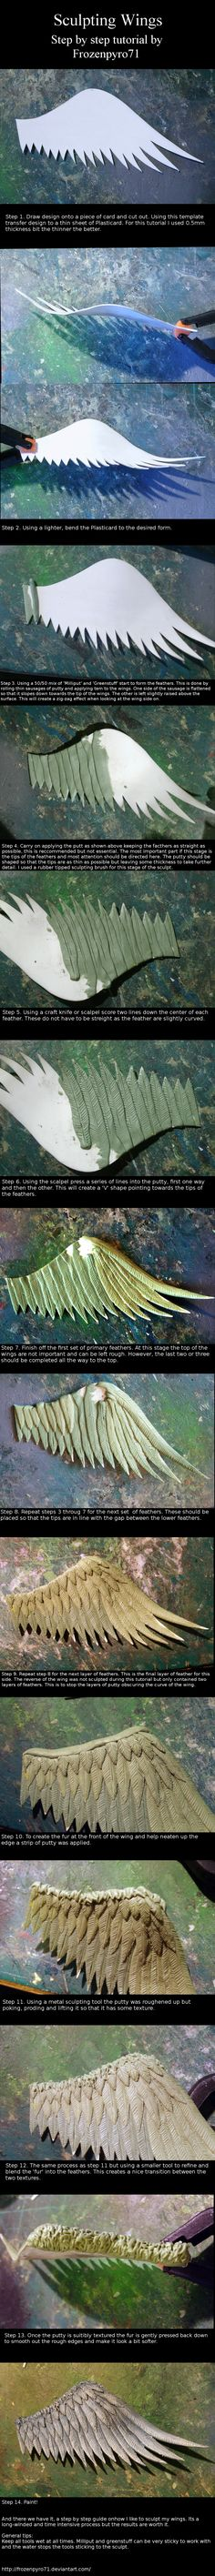 Sculpting wings tutorial This is clay but would be great for working with paper mache